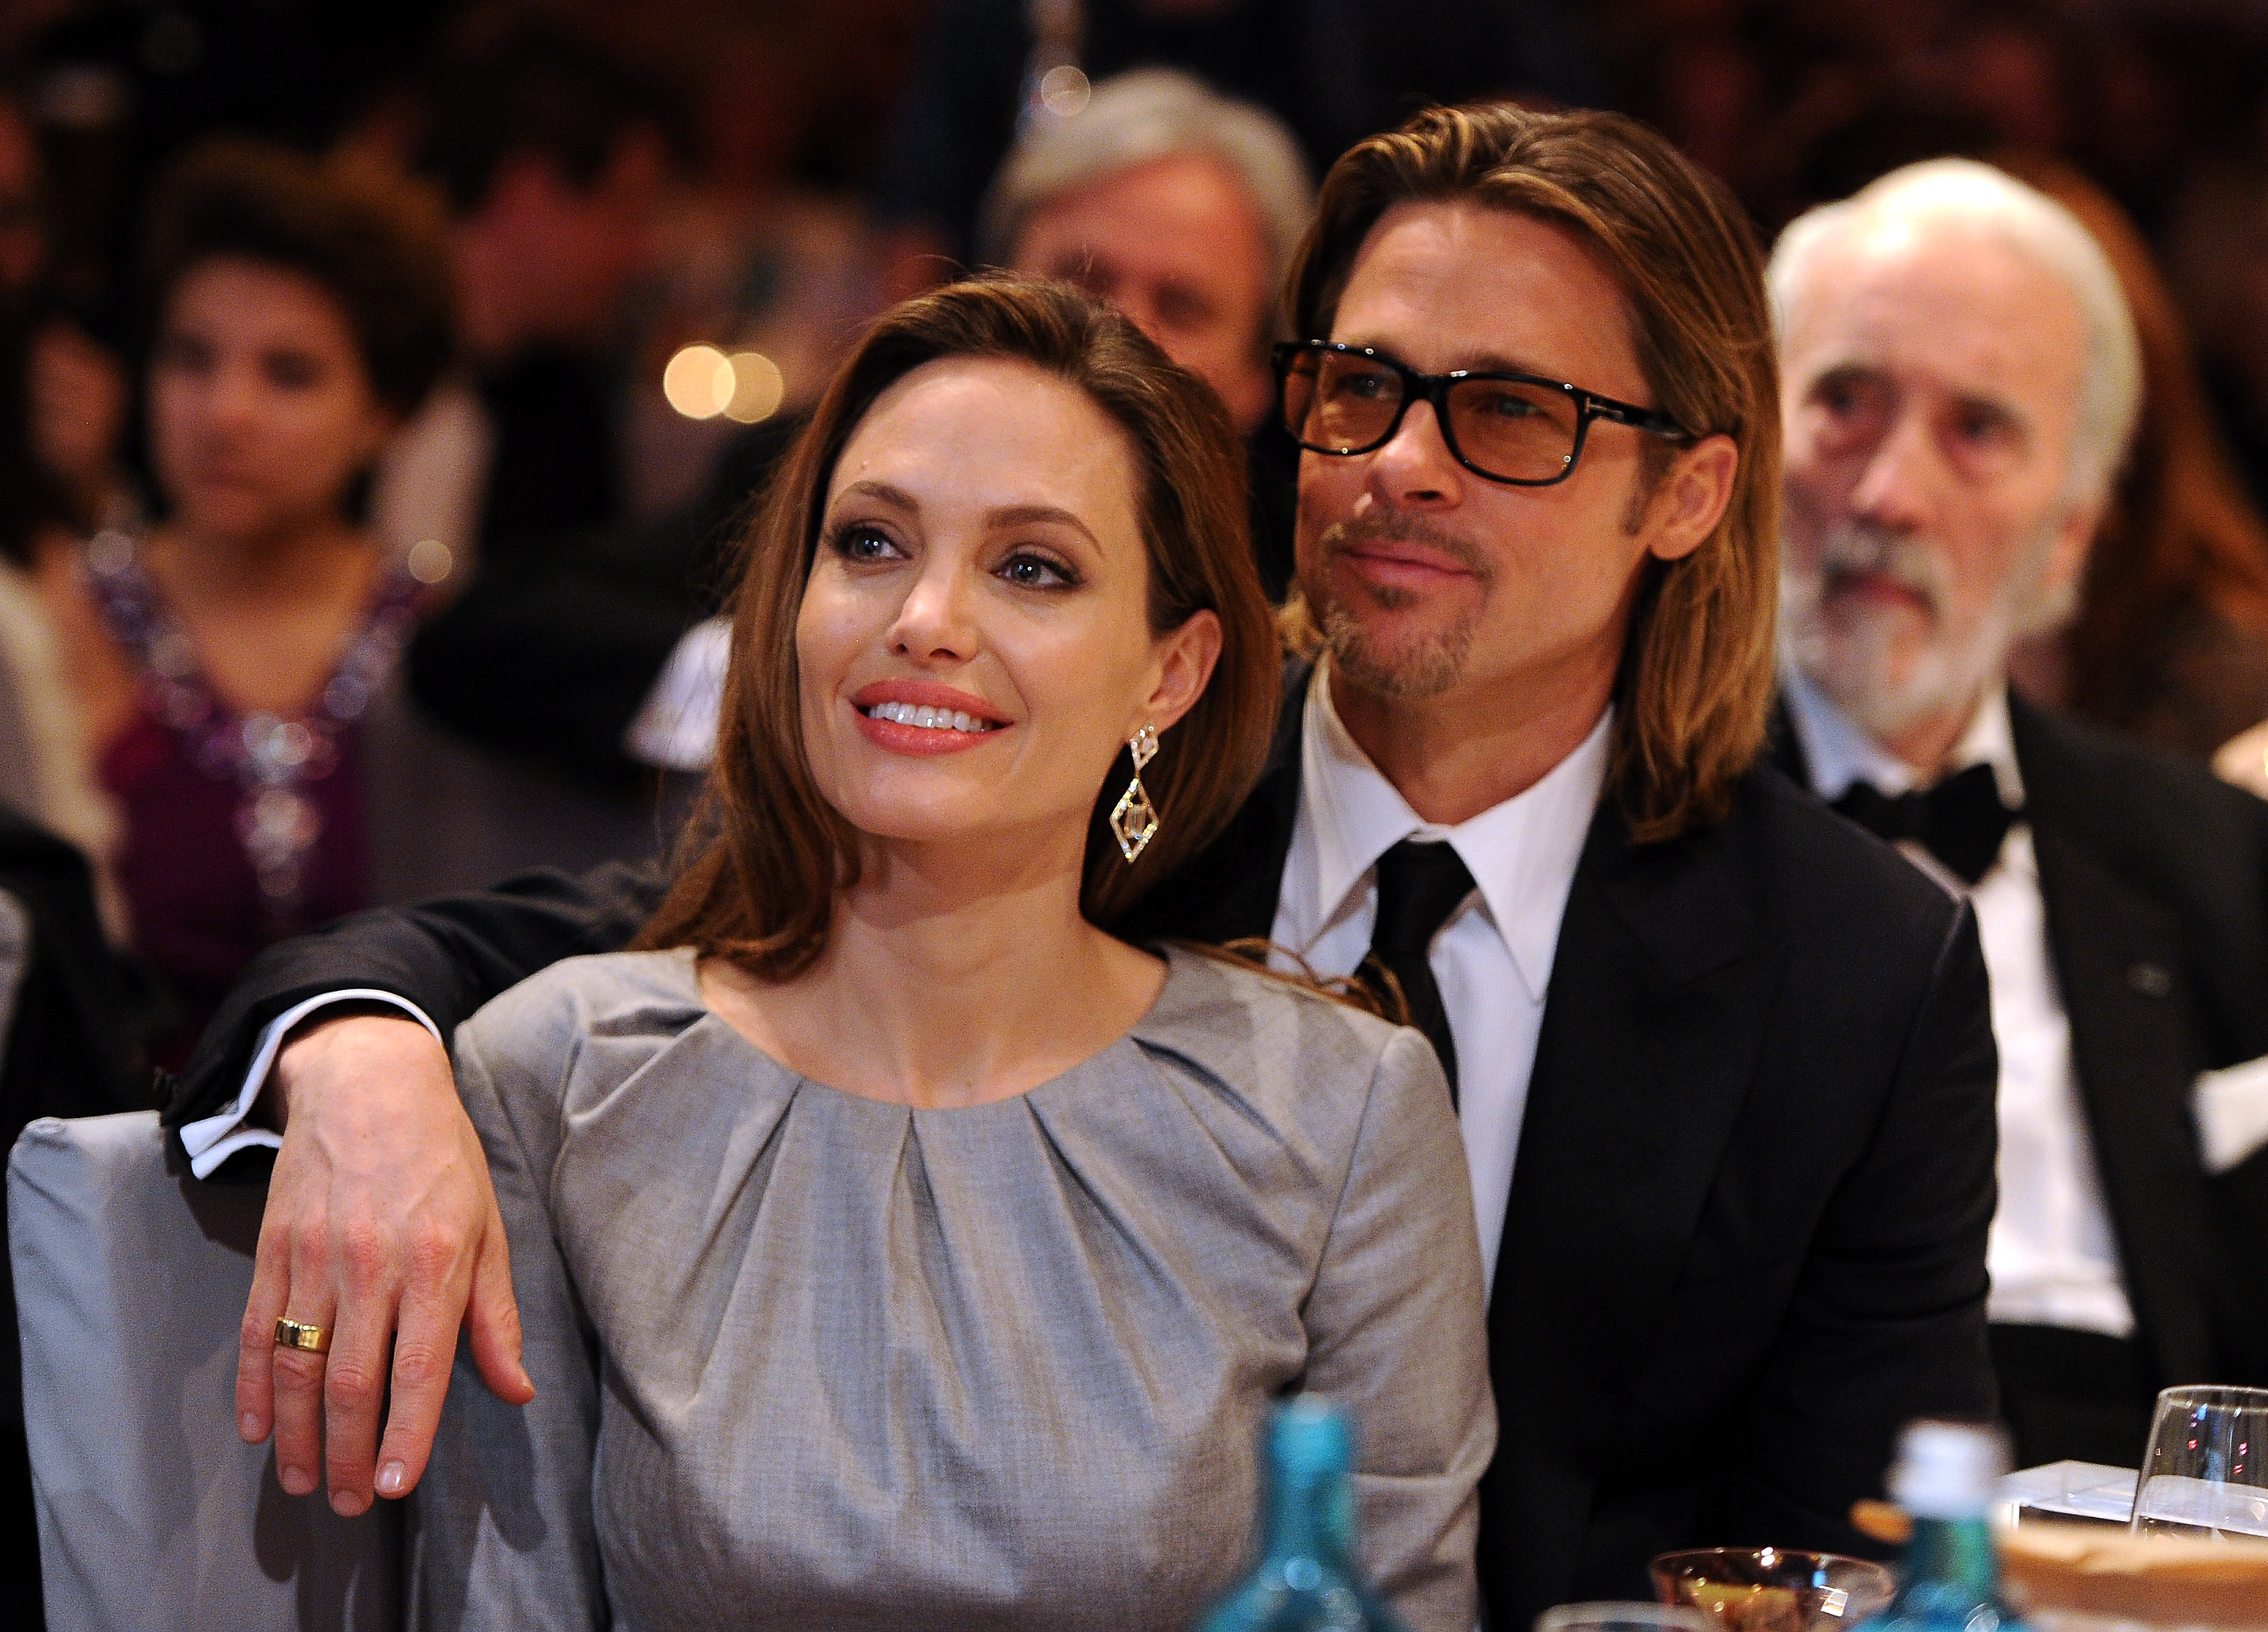 Angelina Jolie and Brad Pitt attend the Cinema for Peace Gala ceremony at the Konzerthaus Am Gendarmenmarkt during day five of the 62nd Berlin International Film Festival on February 13, 2012 in Berlin, Germany. (Photo by Pascal Le Segretain/Getty Images for Cinema for Peace)